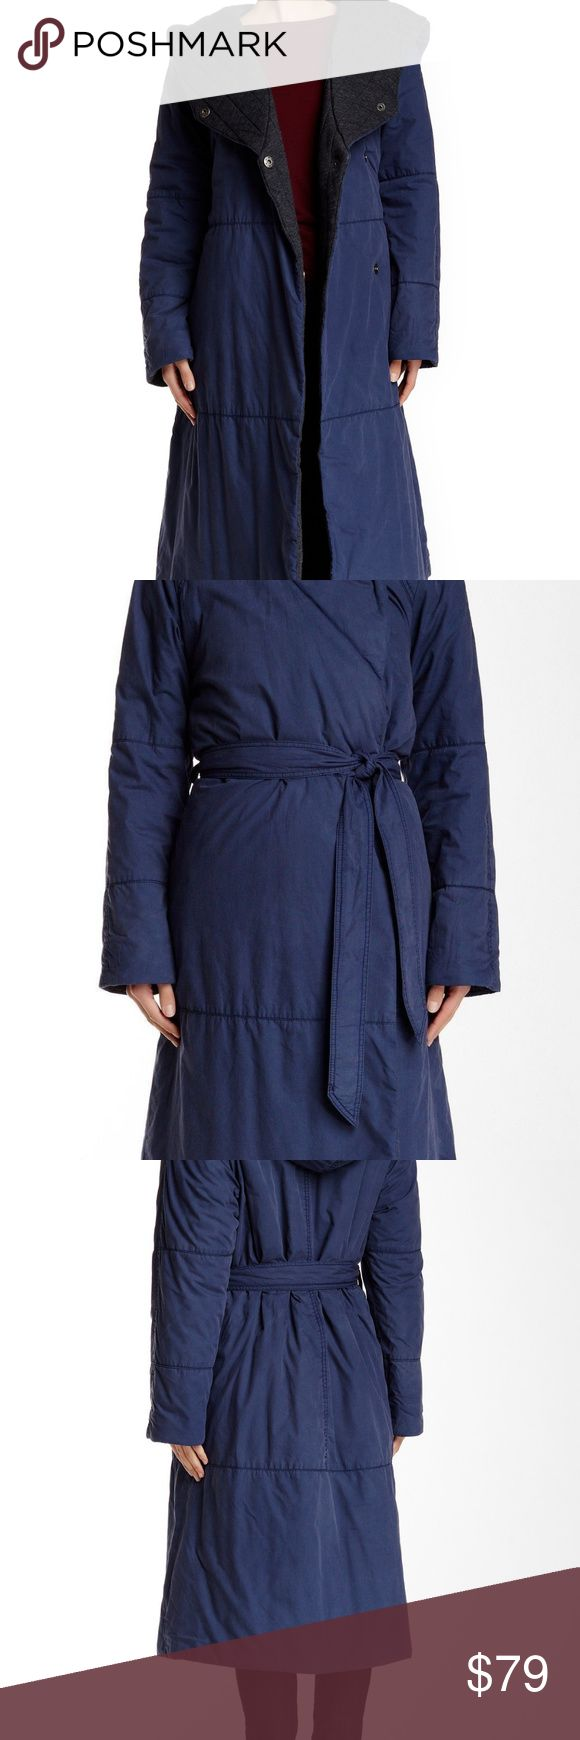 NWT Free People Poplin Art to Wear Blanket Coat L Rare Sold Out on Nordstrom Rack  Free People Poplin Art to Wear Blanket Maxi Coat  Color - Dark Blue  Retail - $398  Size - Large  Thick hooded long coat with a self-tie belt wears like a cozy comforter to keep you warm in the coldest temperatures. - Attached hood - Front double snap closure - Self-tie belt - 2 side slash pockets - Lined in soft quilted black fabric  FABRIC = Shell = 100% Cotton Lining = 55% Cotton 35% Polyester 10% Rayon…